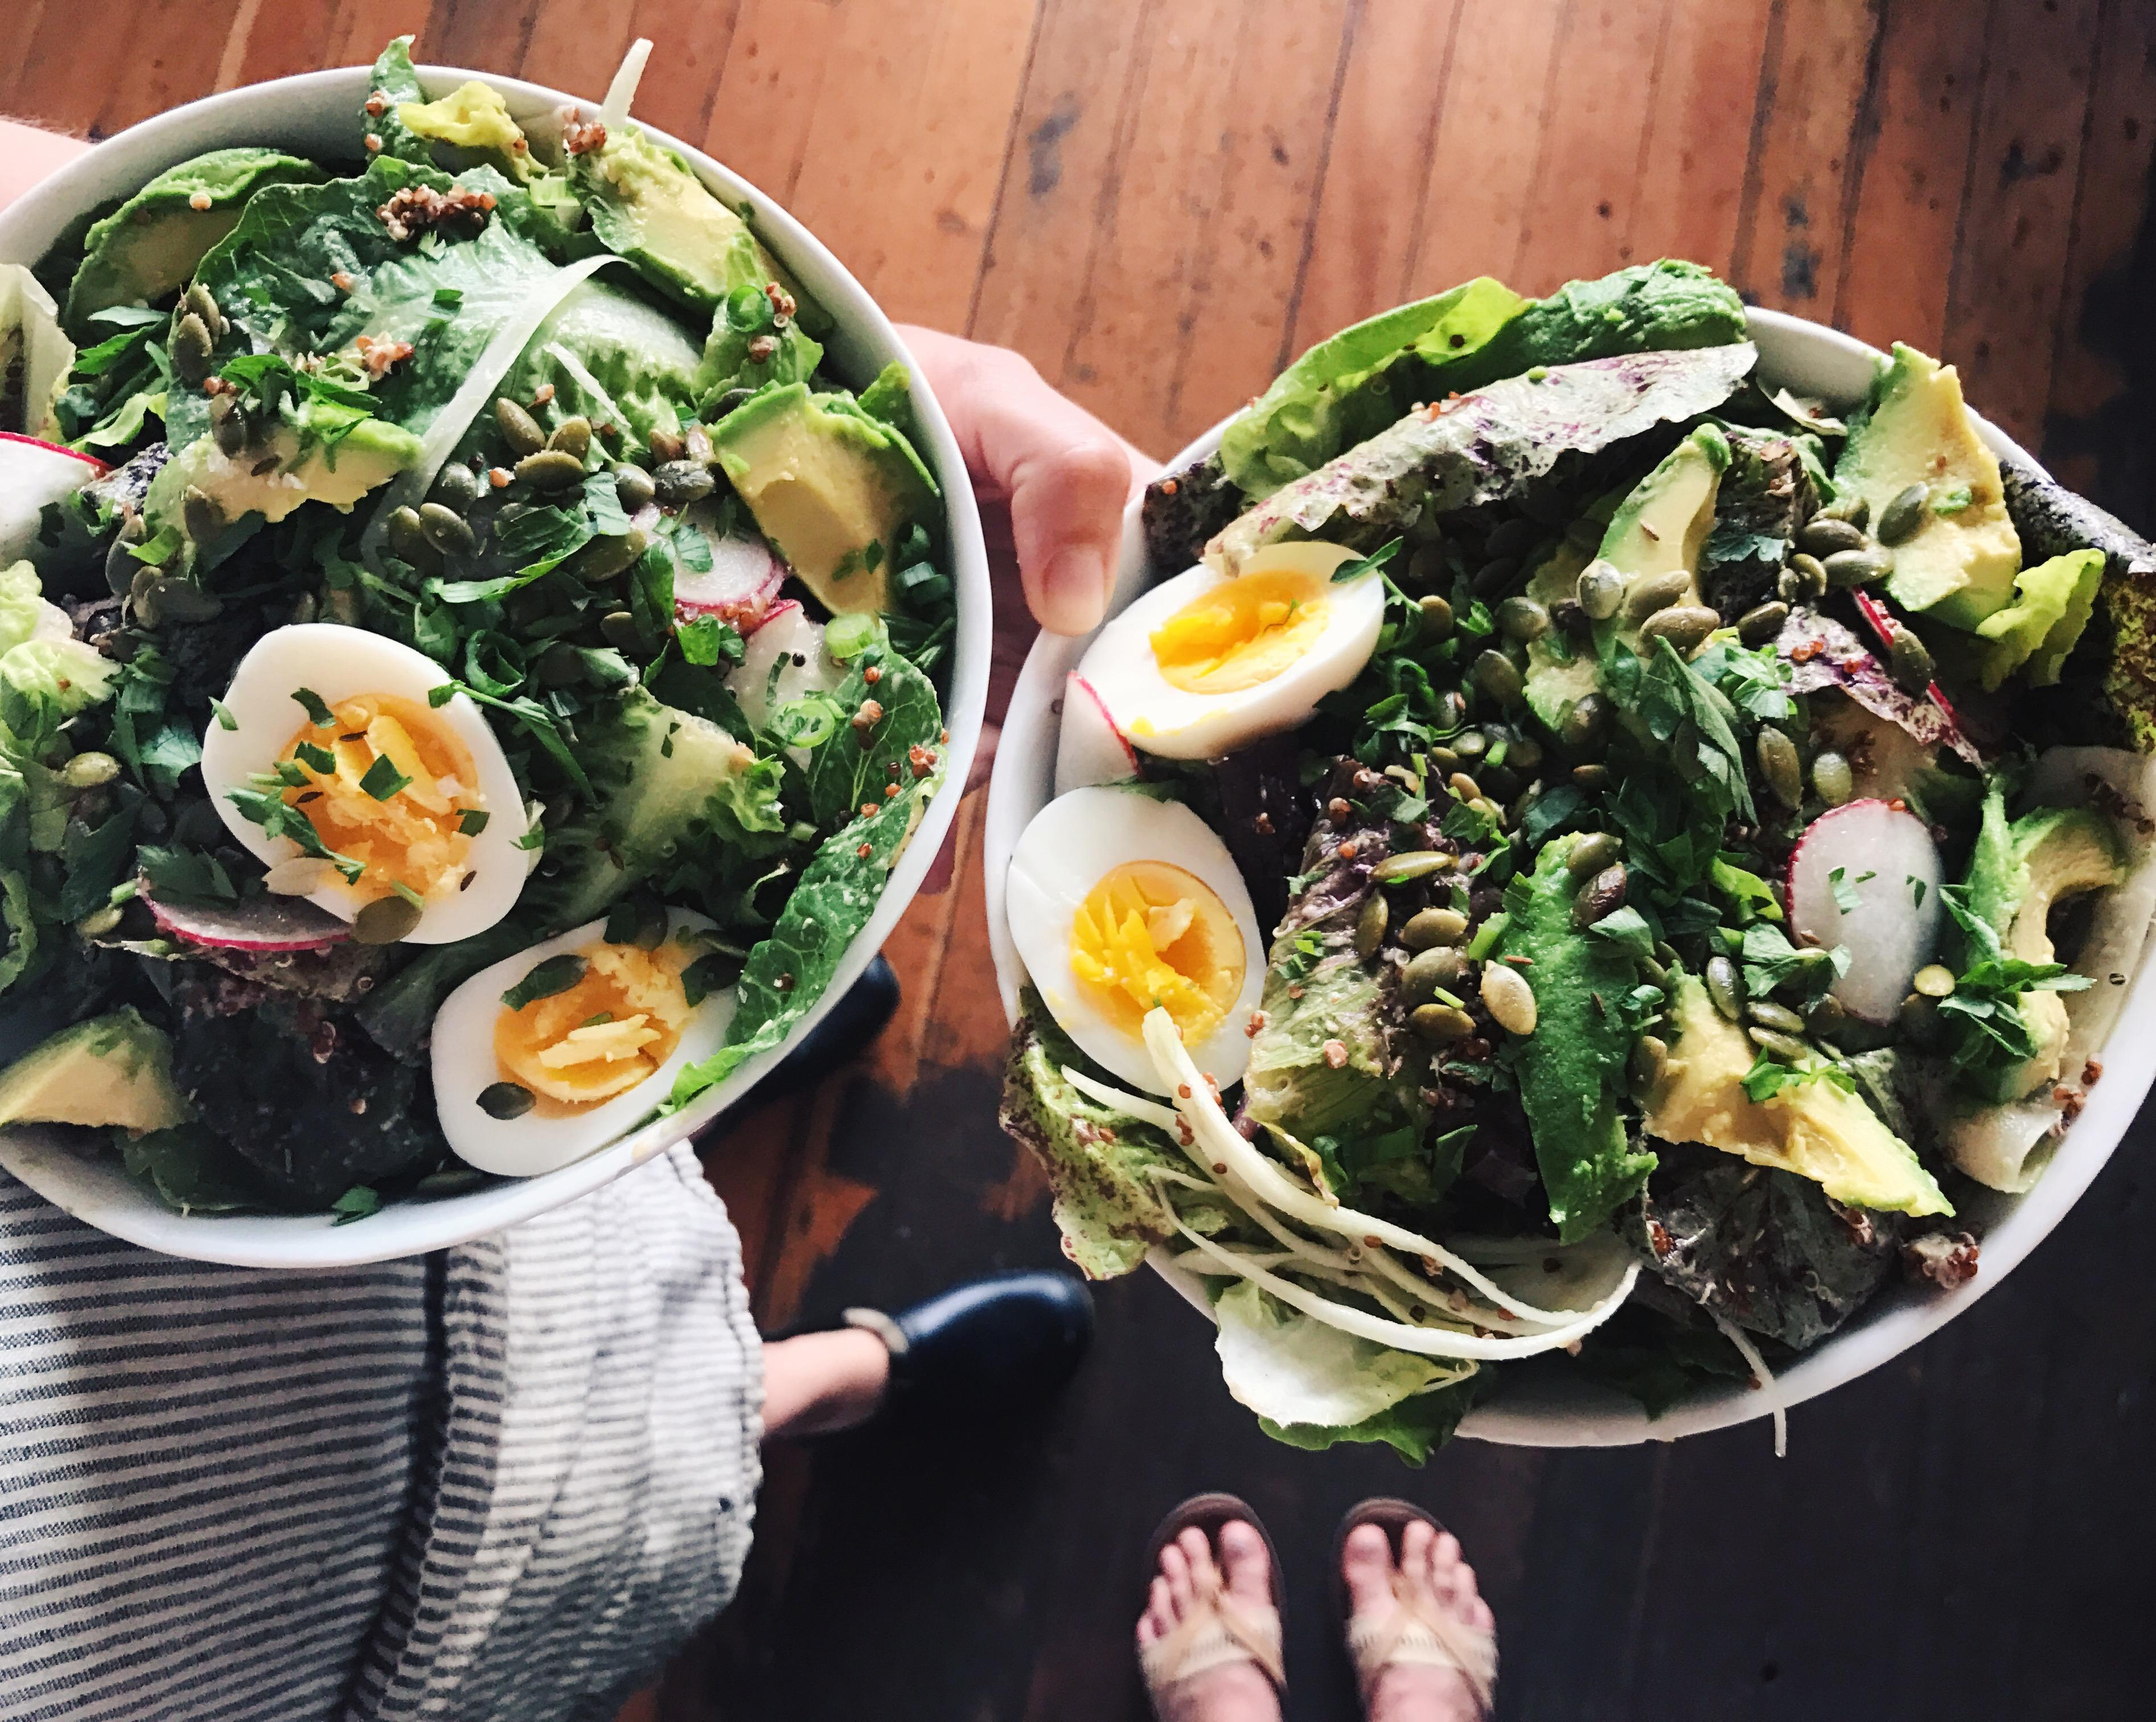 Juicebox's Quinoa Greens Salad; quinoa, cilantro, baby lettuces, radish, shaved fennel, avocado, cumin, and pepitas with roasted fennel vinaigrette and soft-cooked eggs. Totally gluten-free. (Image: Kari Brunson)